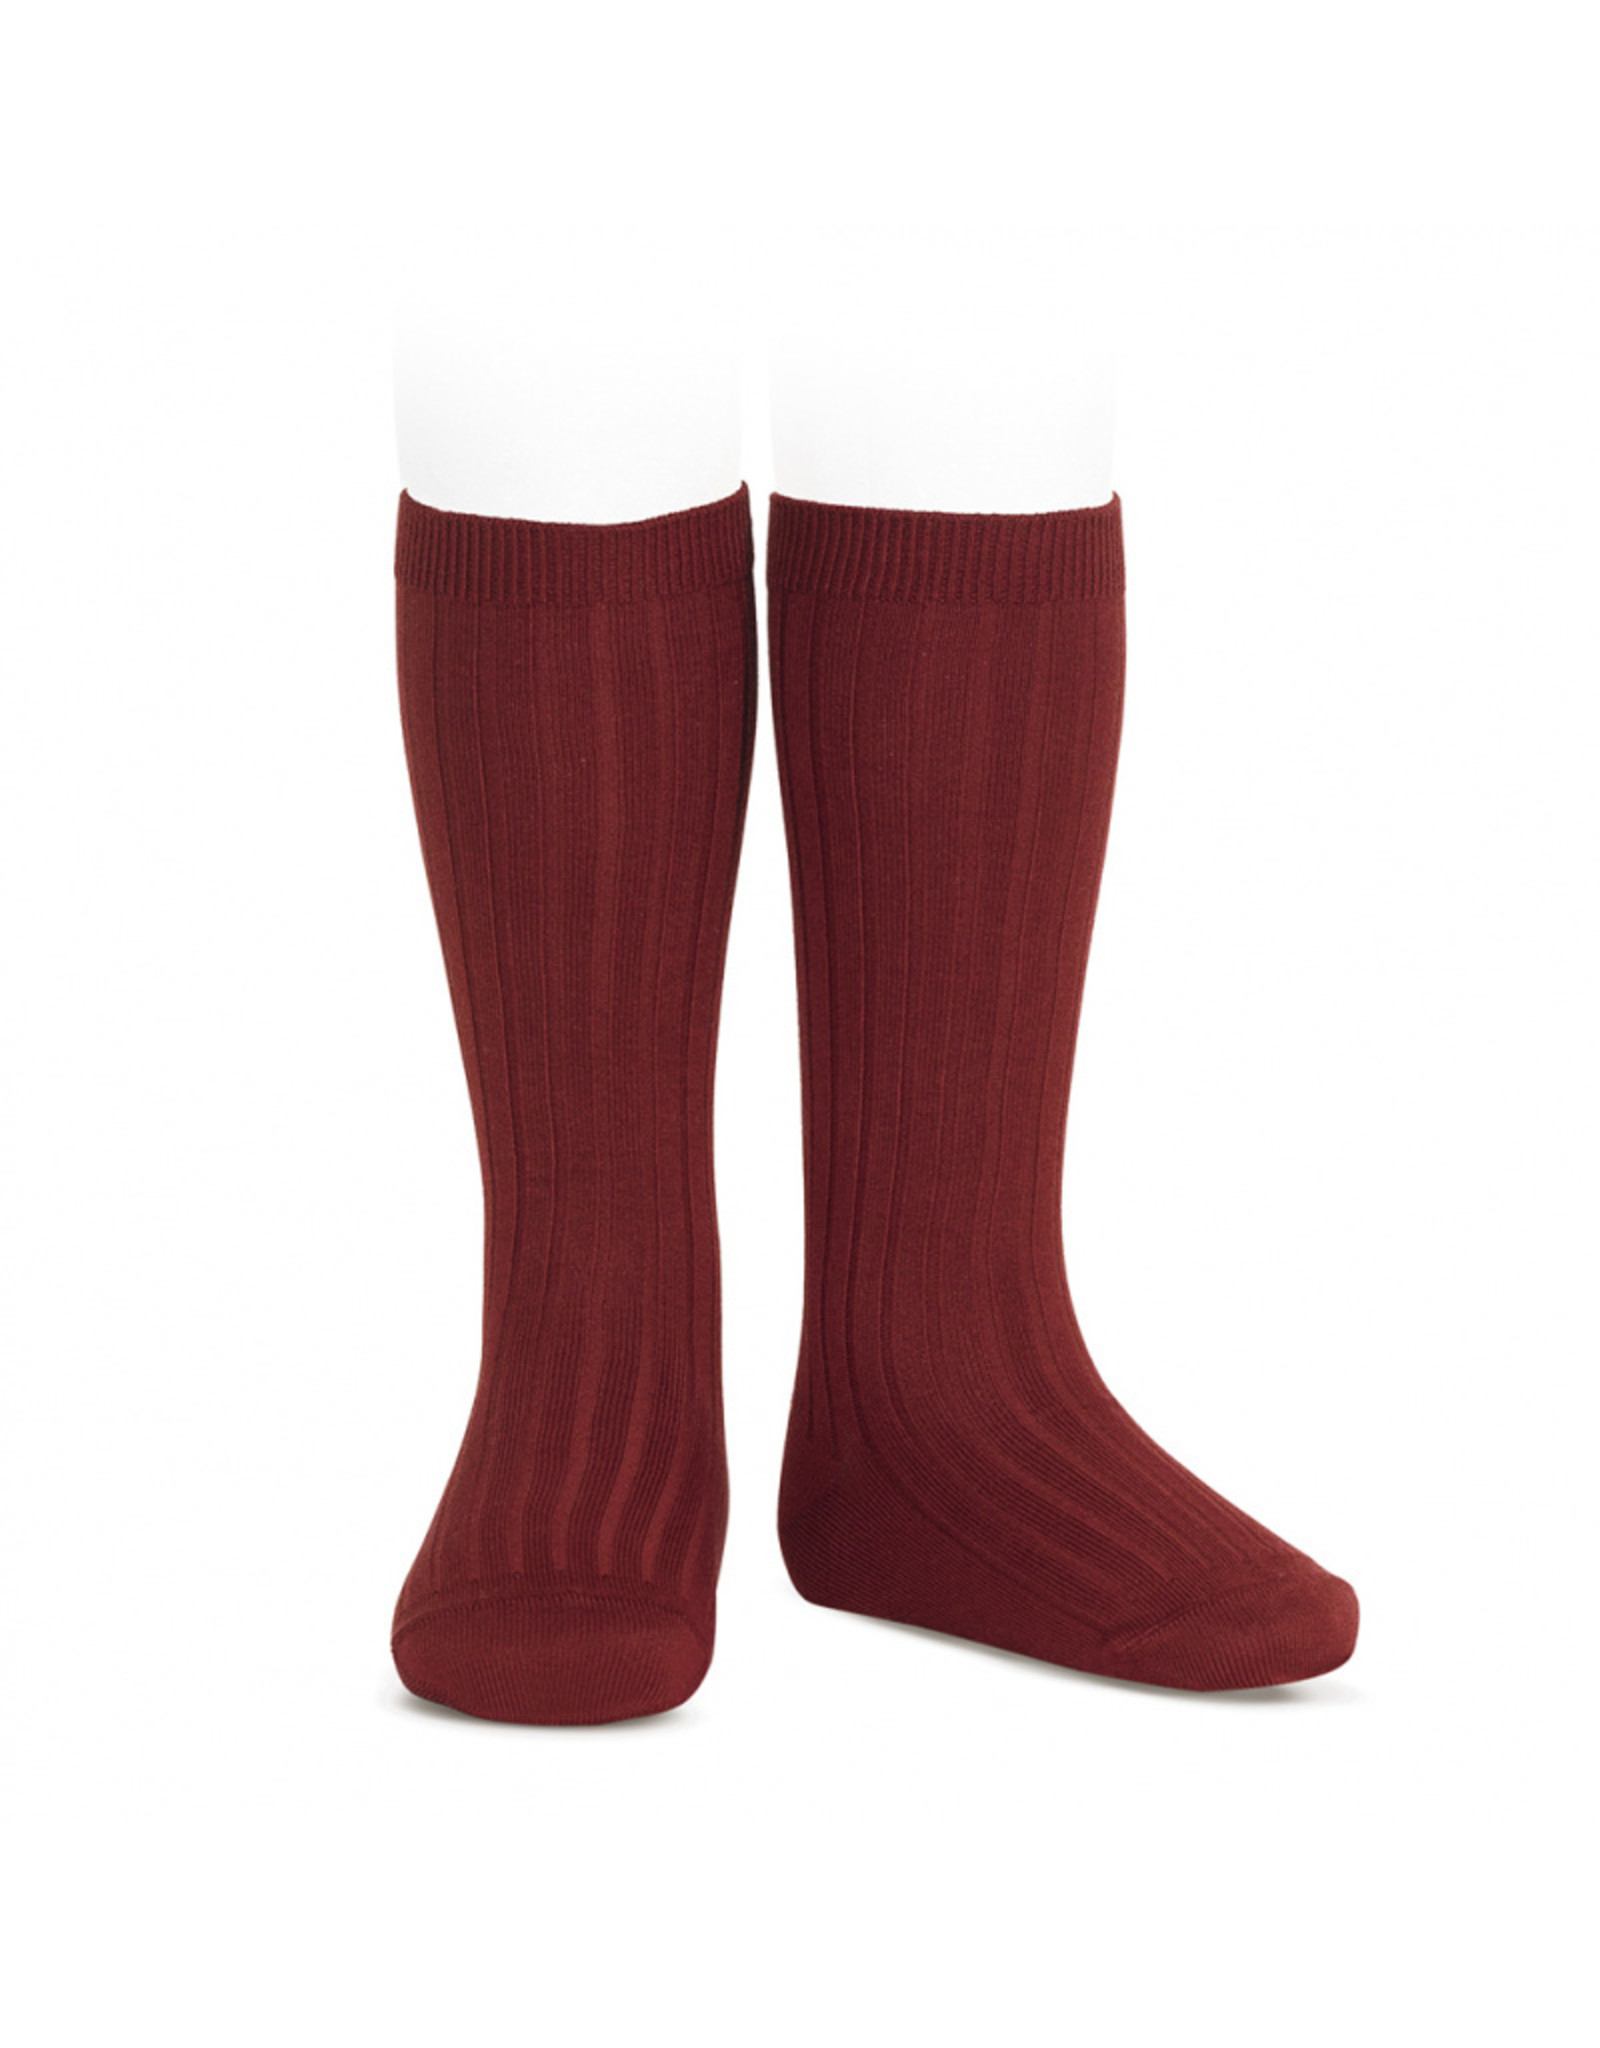 CONDOR Burgundy Ribbed Knee Socks